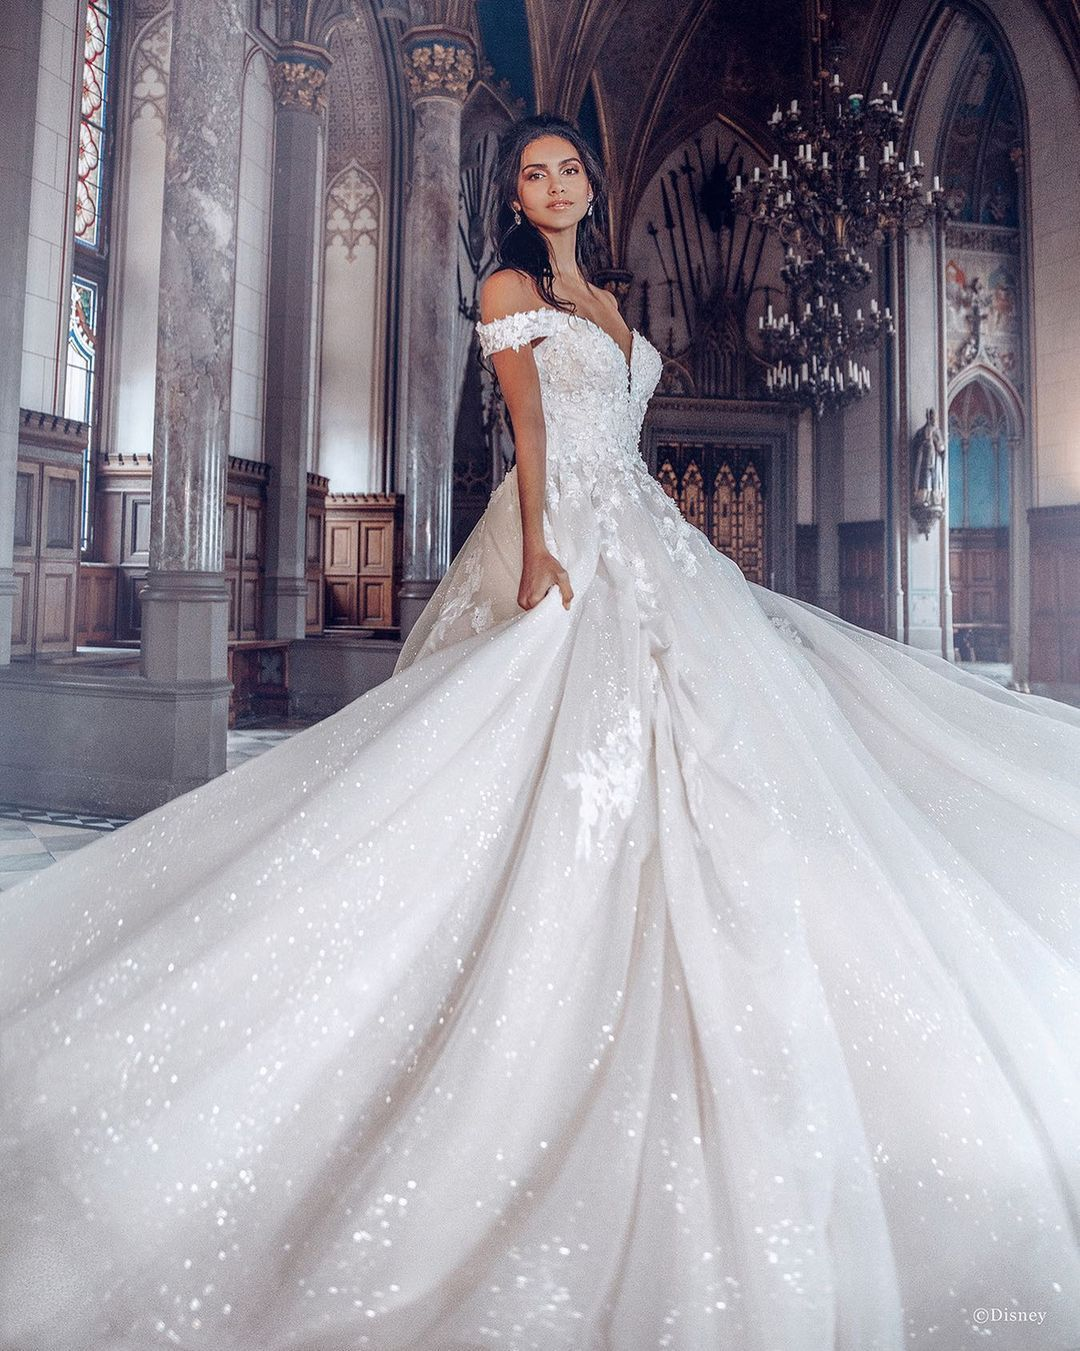 Kleinfeld Bridal On Instagram Live Out Your Happily Ever After In The Belle Disney Princess Wedding Dresses Princess Wedding Dresses Disney Princess Wedding [ 1351 x 1080 Pixel ]